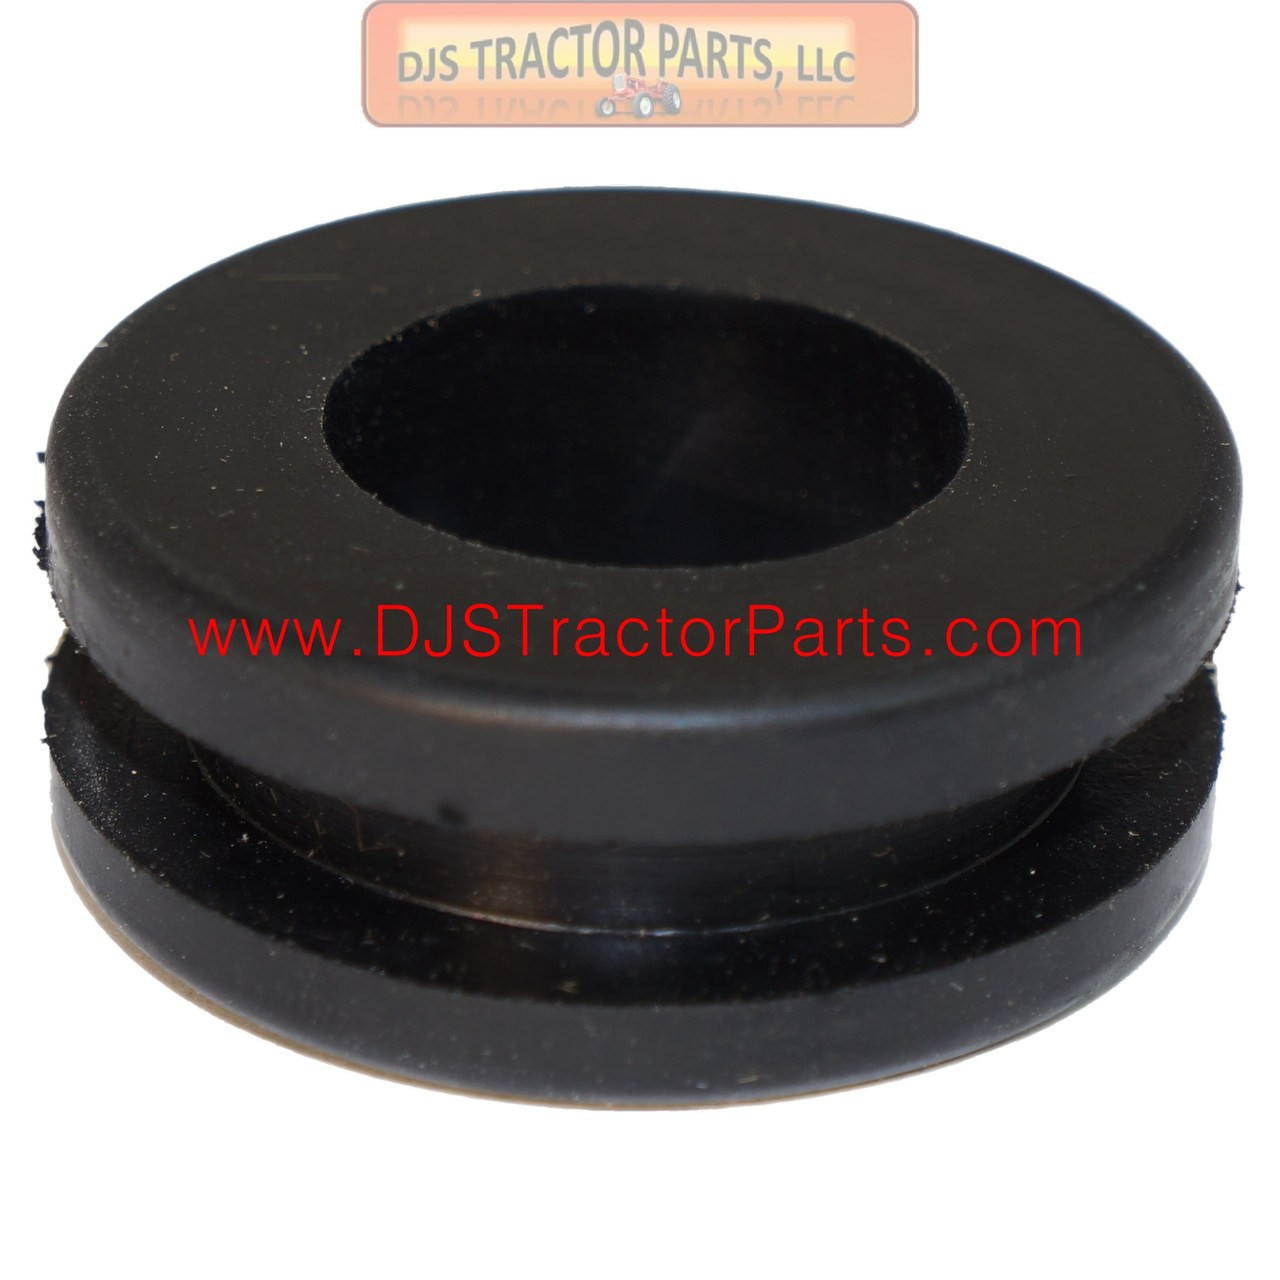 medium resolution of wiring harness grommet for dash fuel tank support ab 1897d djs tractor parts llc